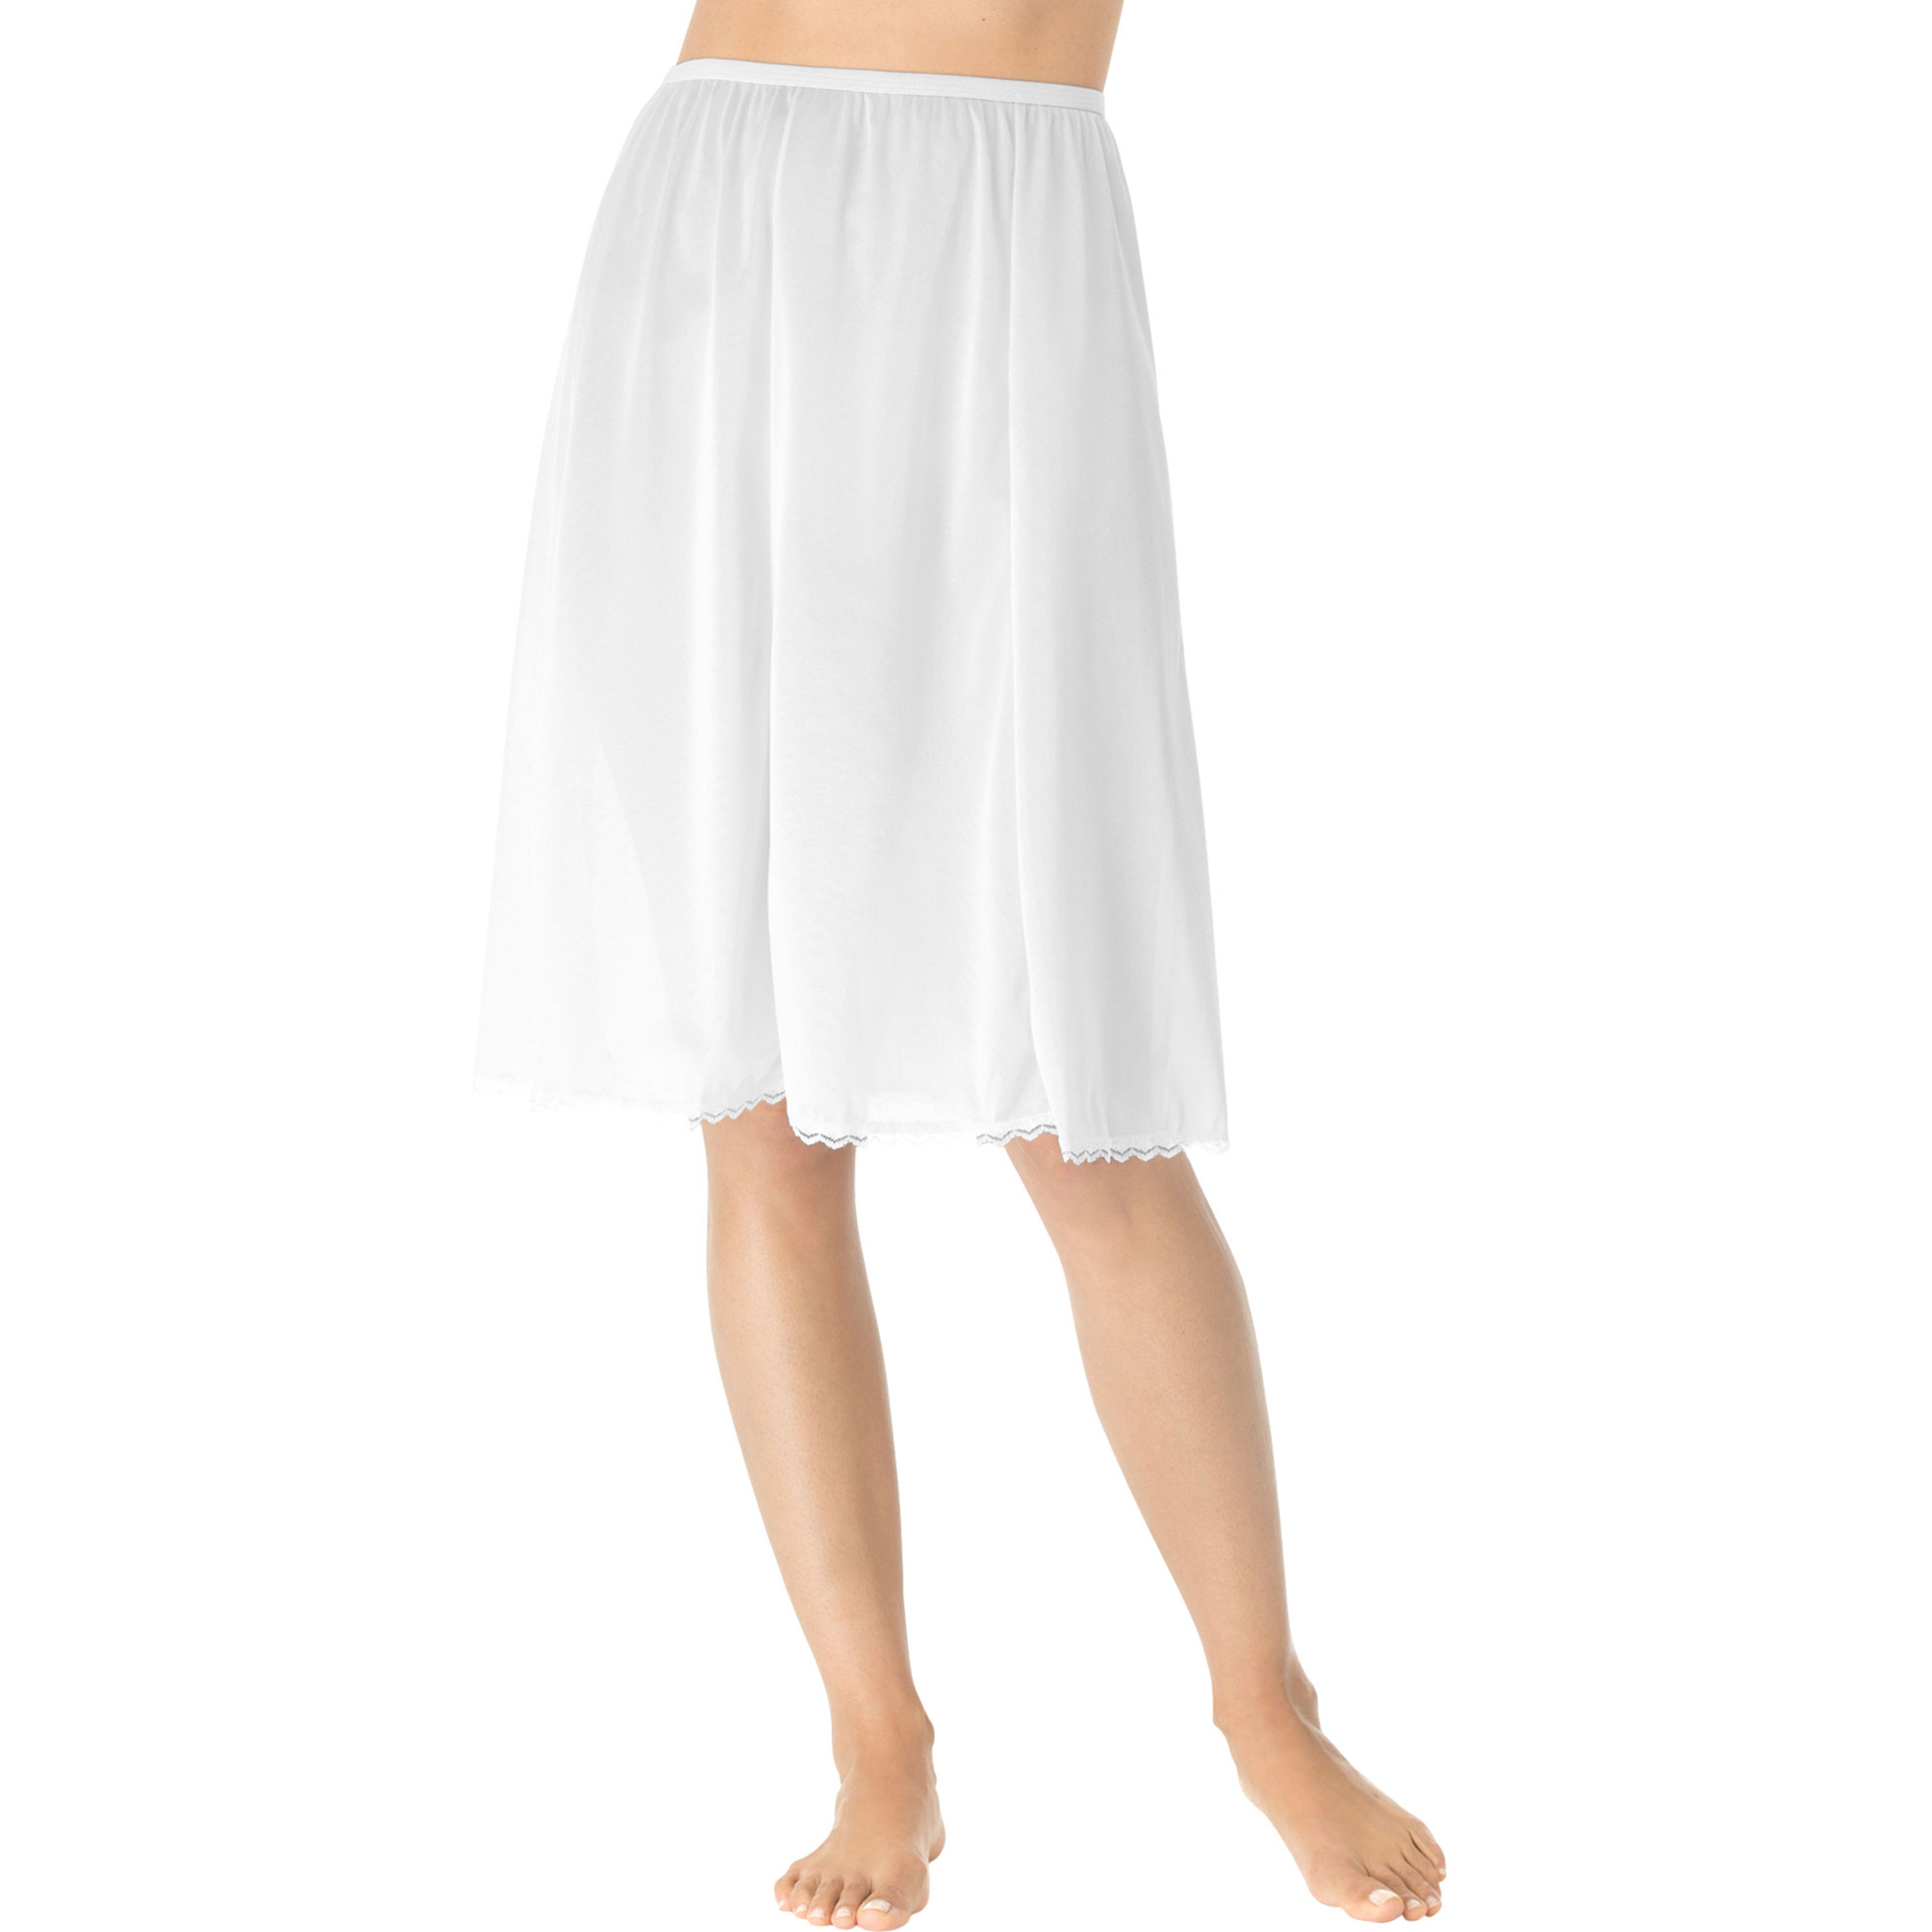 Swimsuitsforall.com coupon: Plus Size Women's 6-Panel Half Slip by Comfort Choice in White (Size 1X)